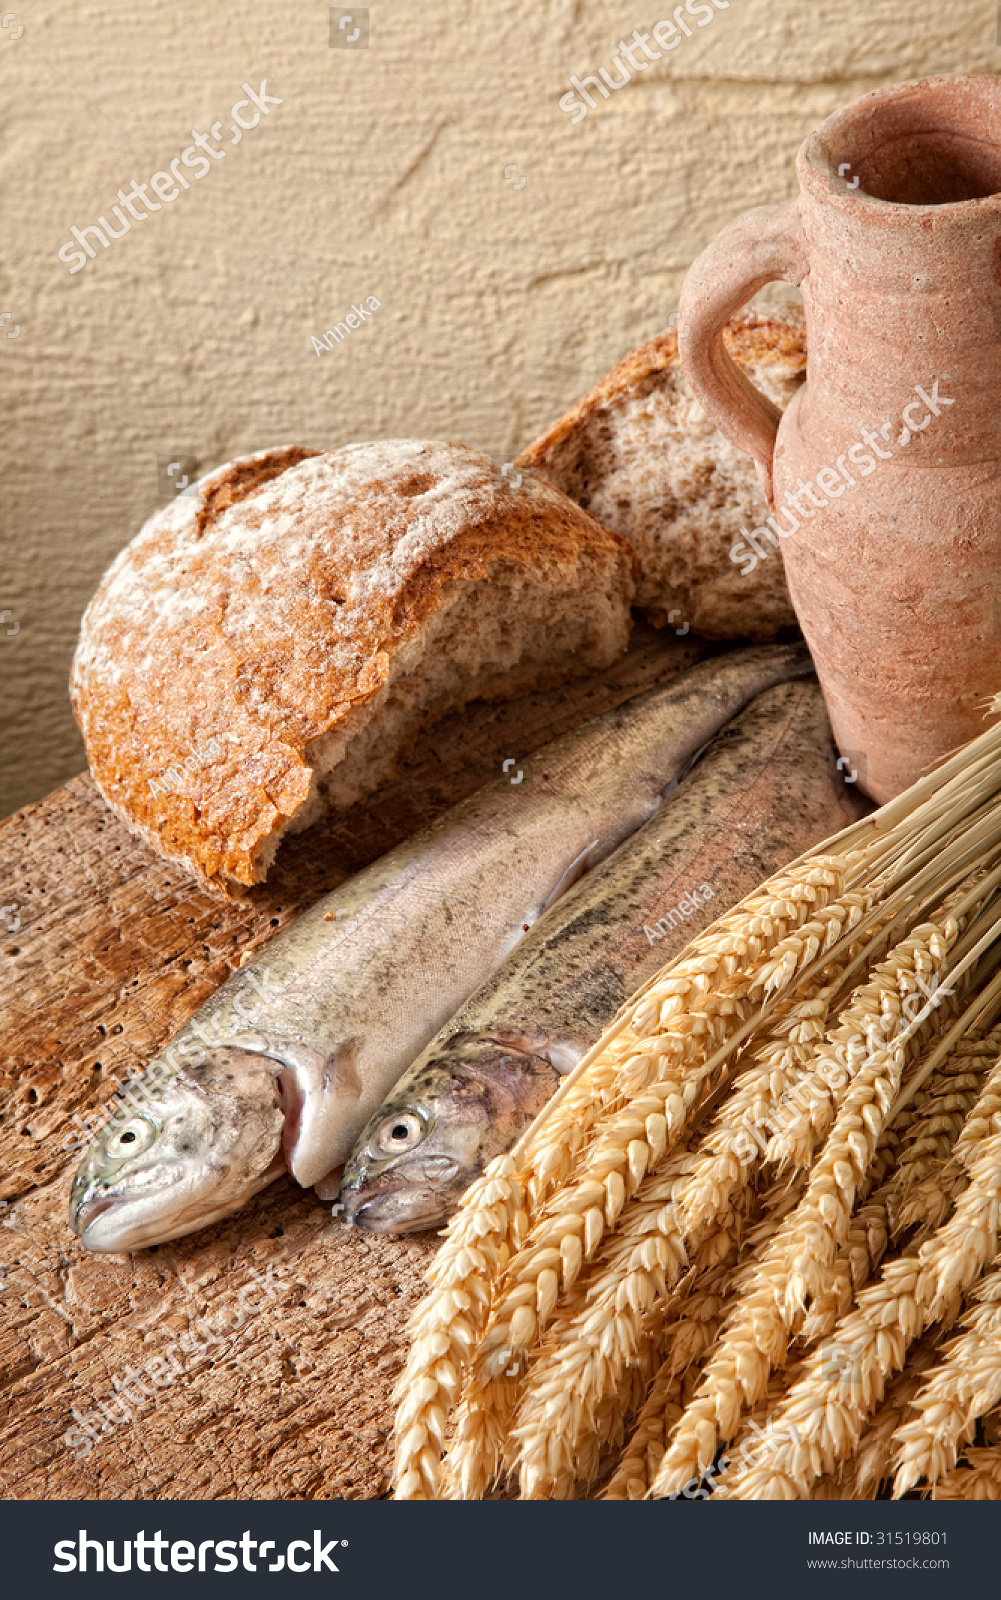 Symbols christian belief wine bread fish stock photo for How to bread fish